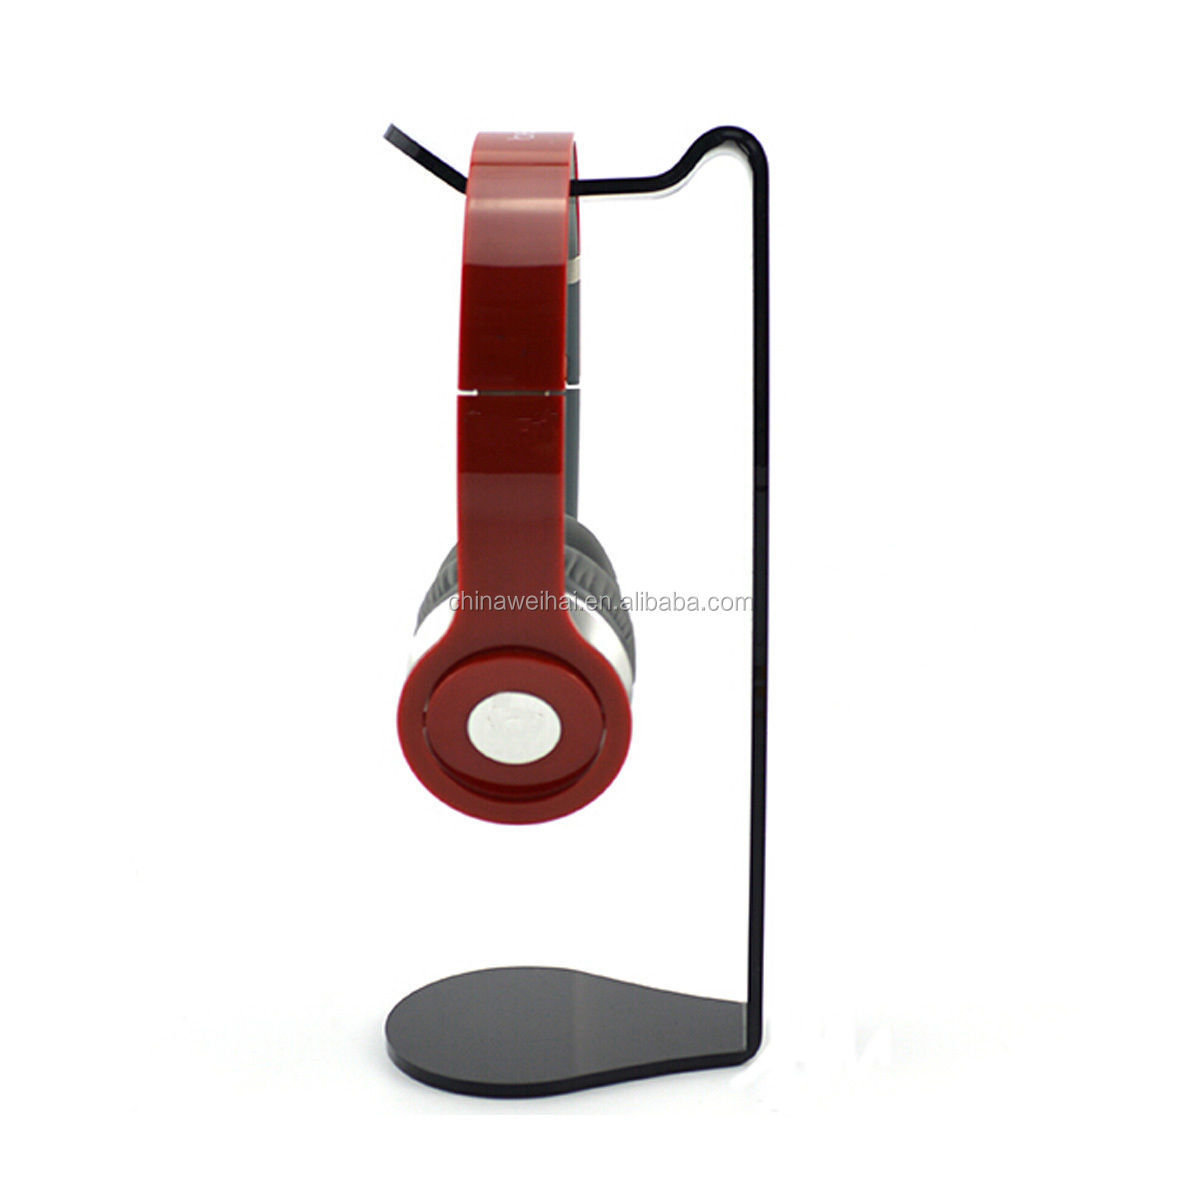 Black Acrylic Earphone Headset Hanger Holder Headphone Stand Holder Desk Display